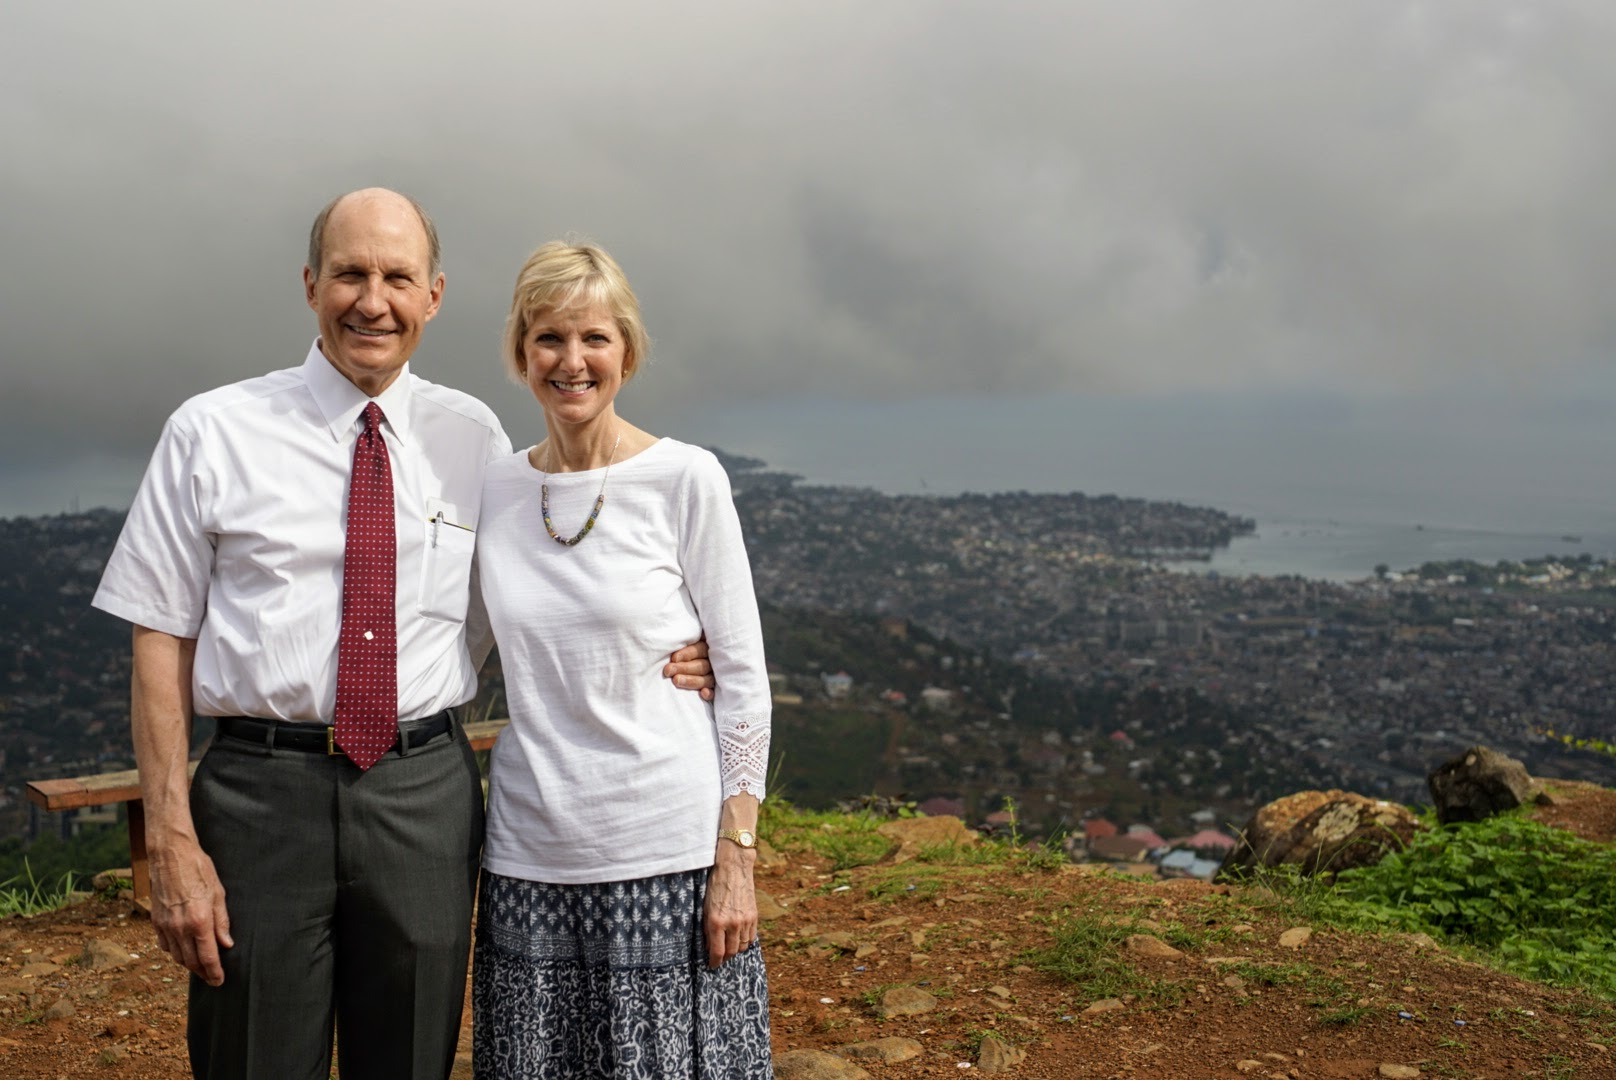 Sister Jean B. Bingham and her husband, Brother Bruce Bingham, in Sierra Leone. Sister Bingham, Relief Society general president, visited the West African country June 5 through June 16.